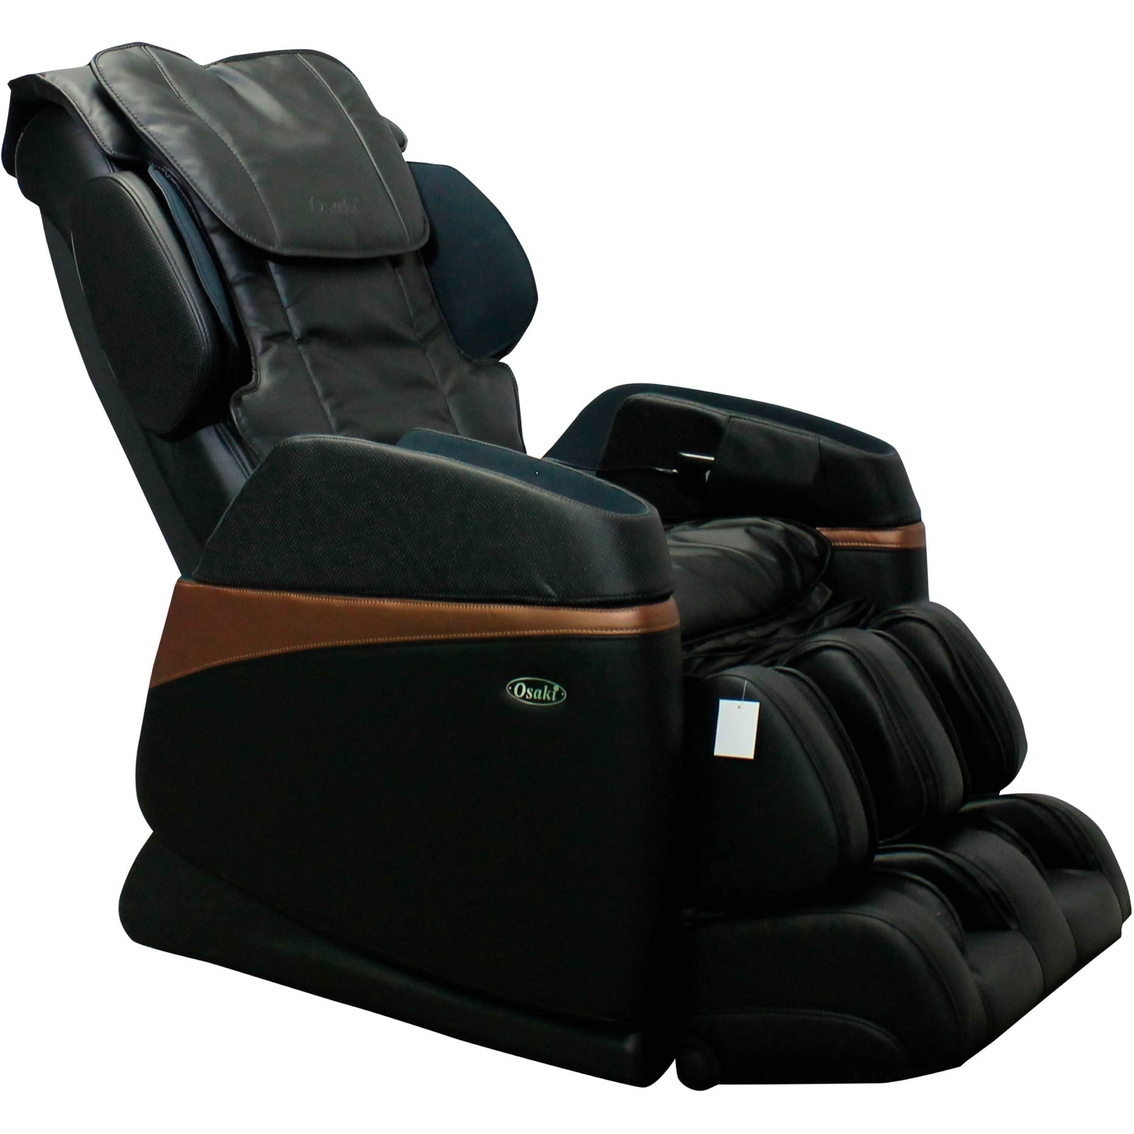 Osaki Massage Chairs Titan Osaki Os 3700 Massage Chair Chairs And Recliners